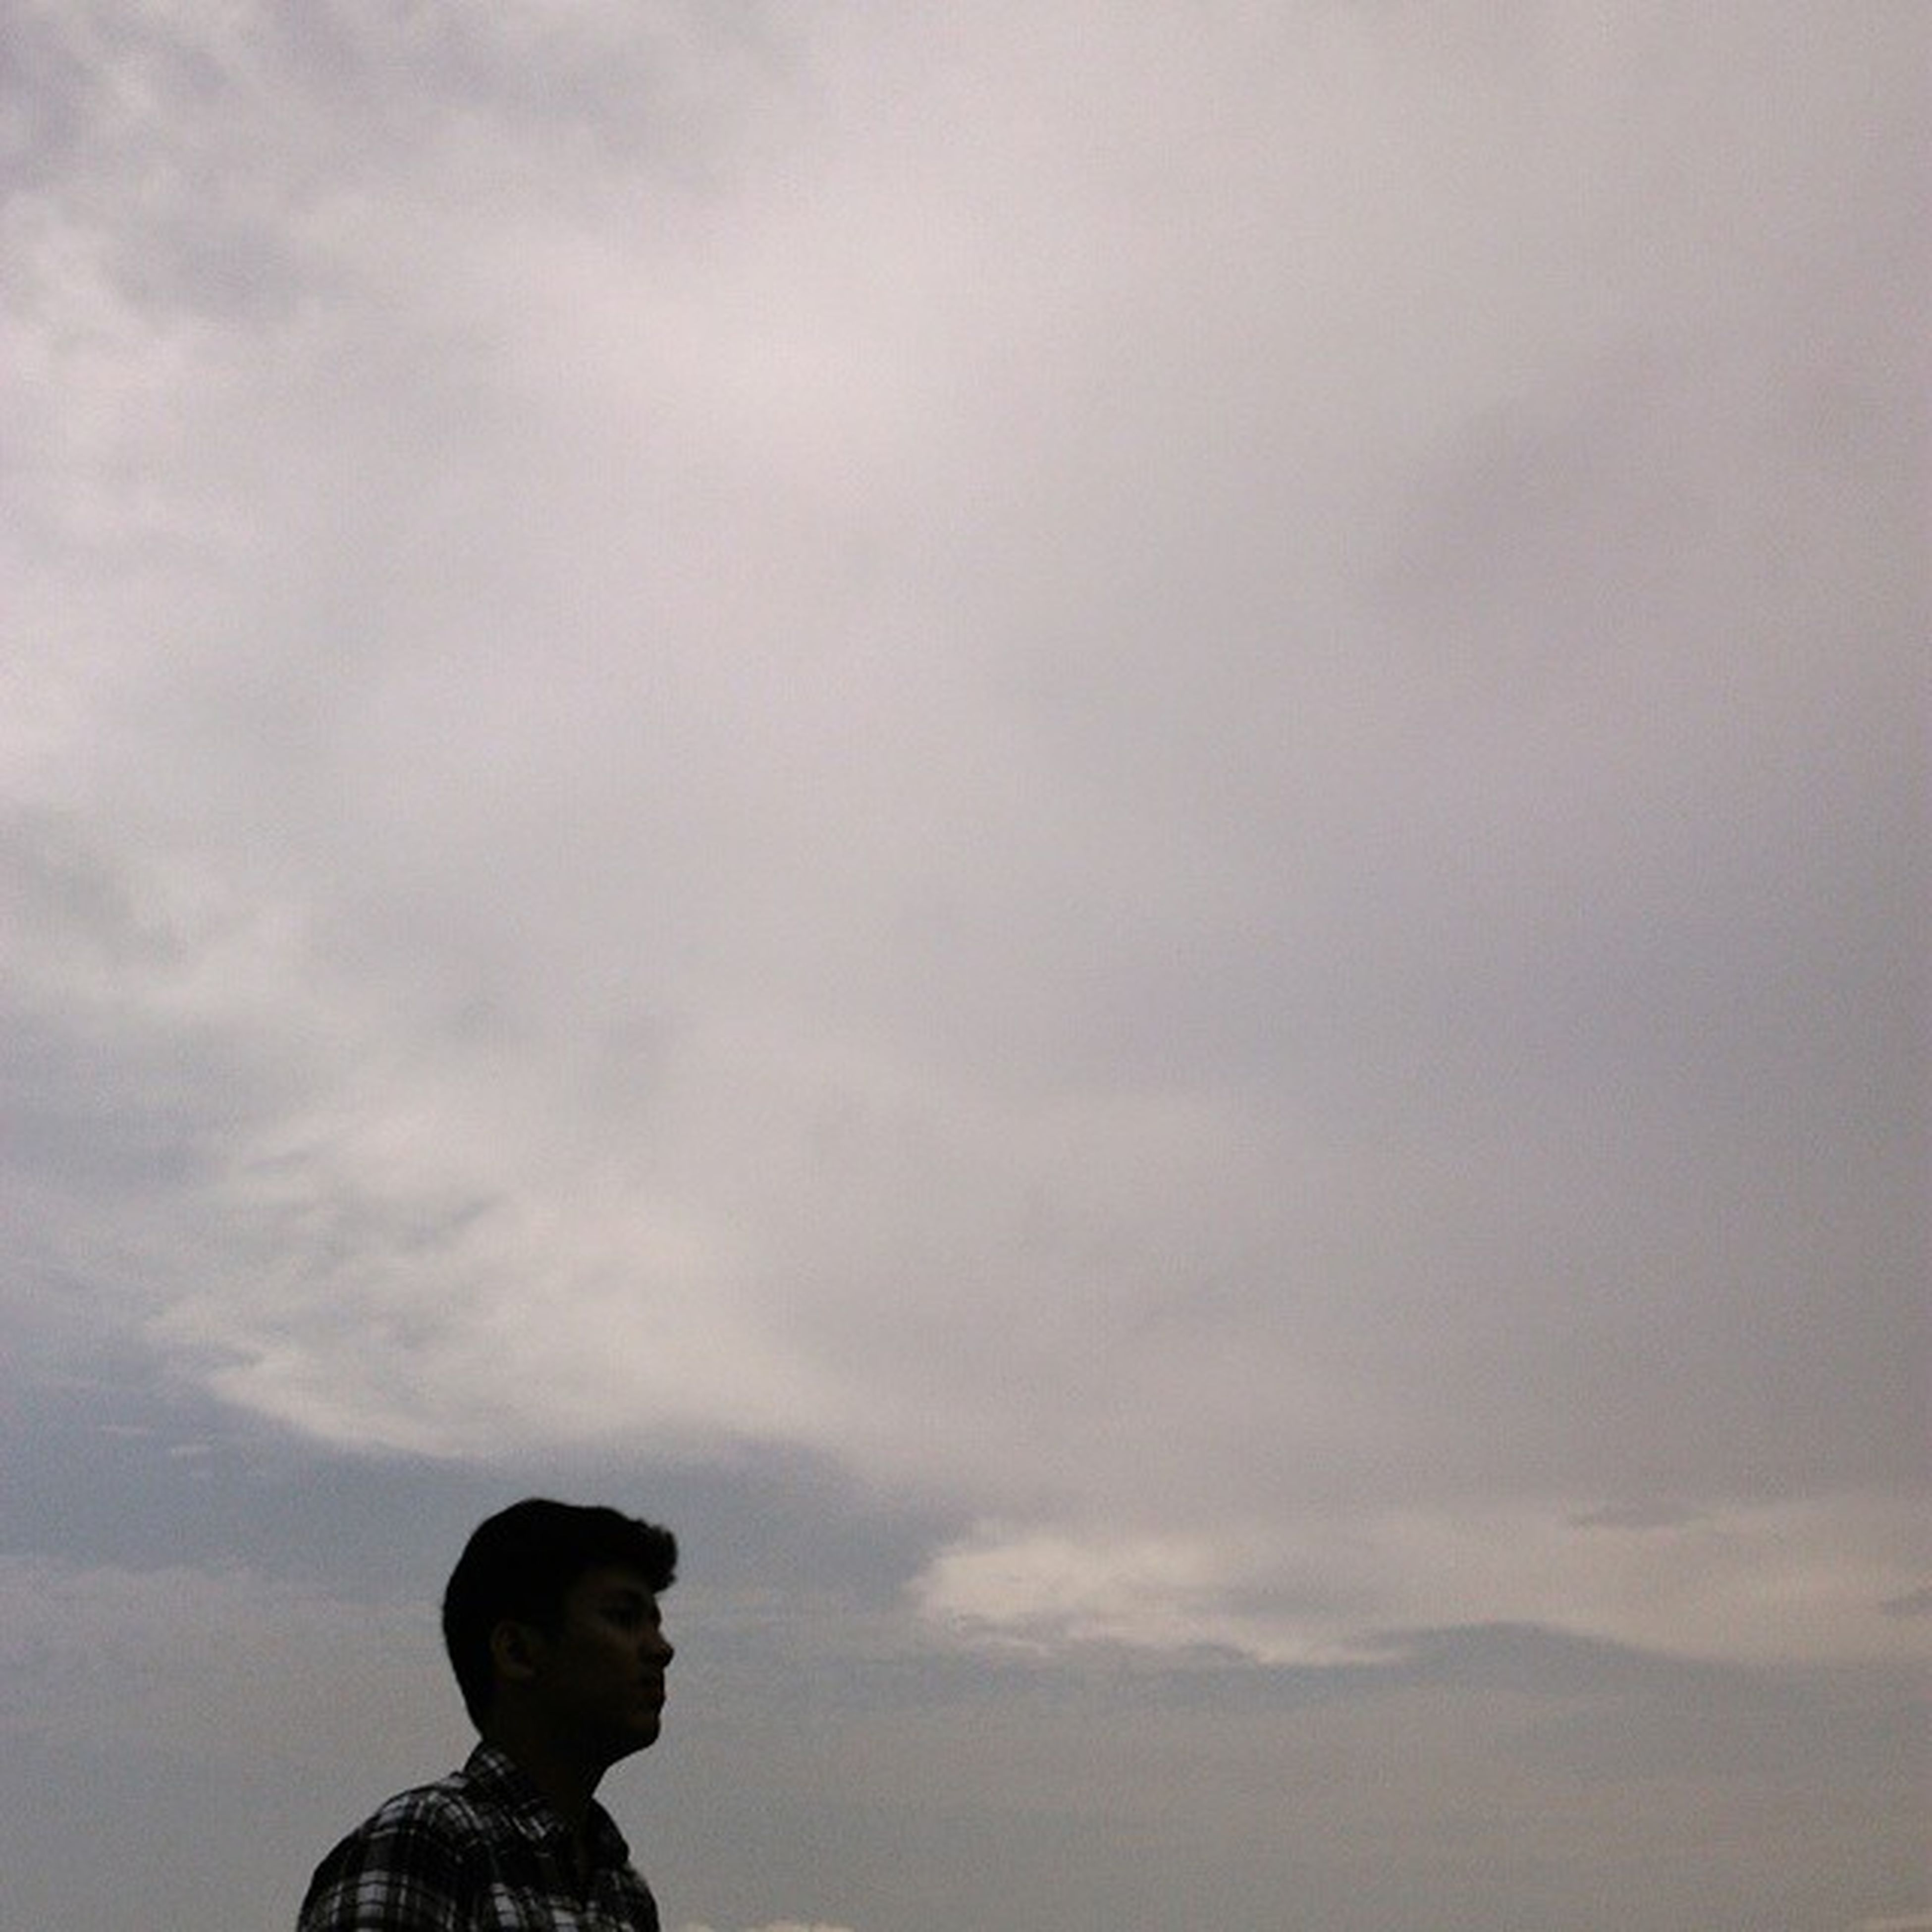 sky, lifestyles, leisure activity, cloud - sky, low angle view, headshot, person, cloudy, waist up, standing, young adult, looking at camera, young men, outdoors, childhood, three quarter length, happiness, portrait